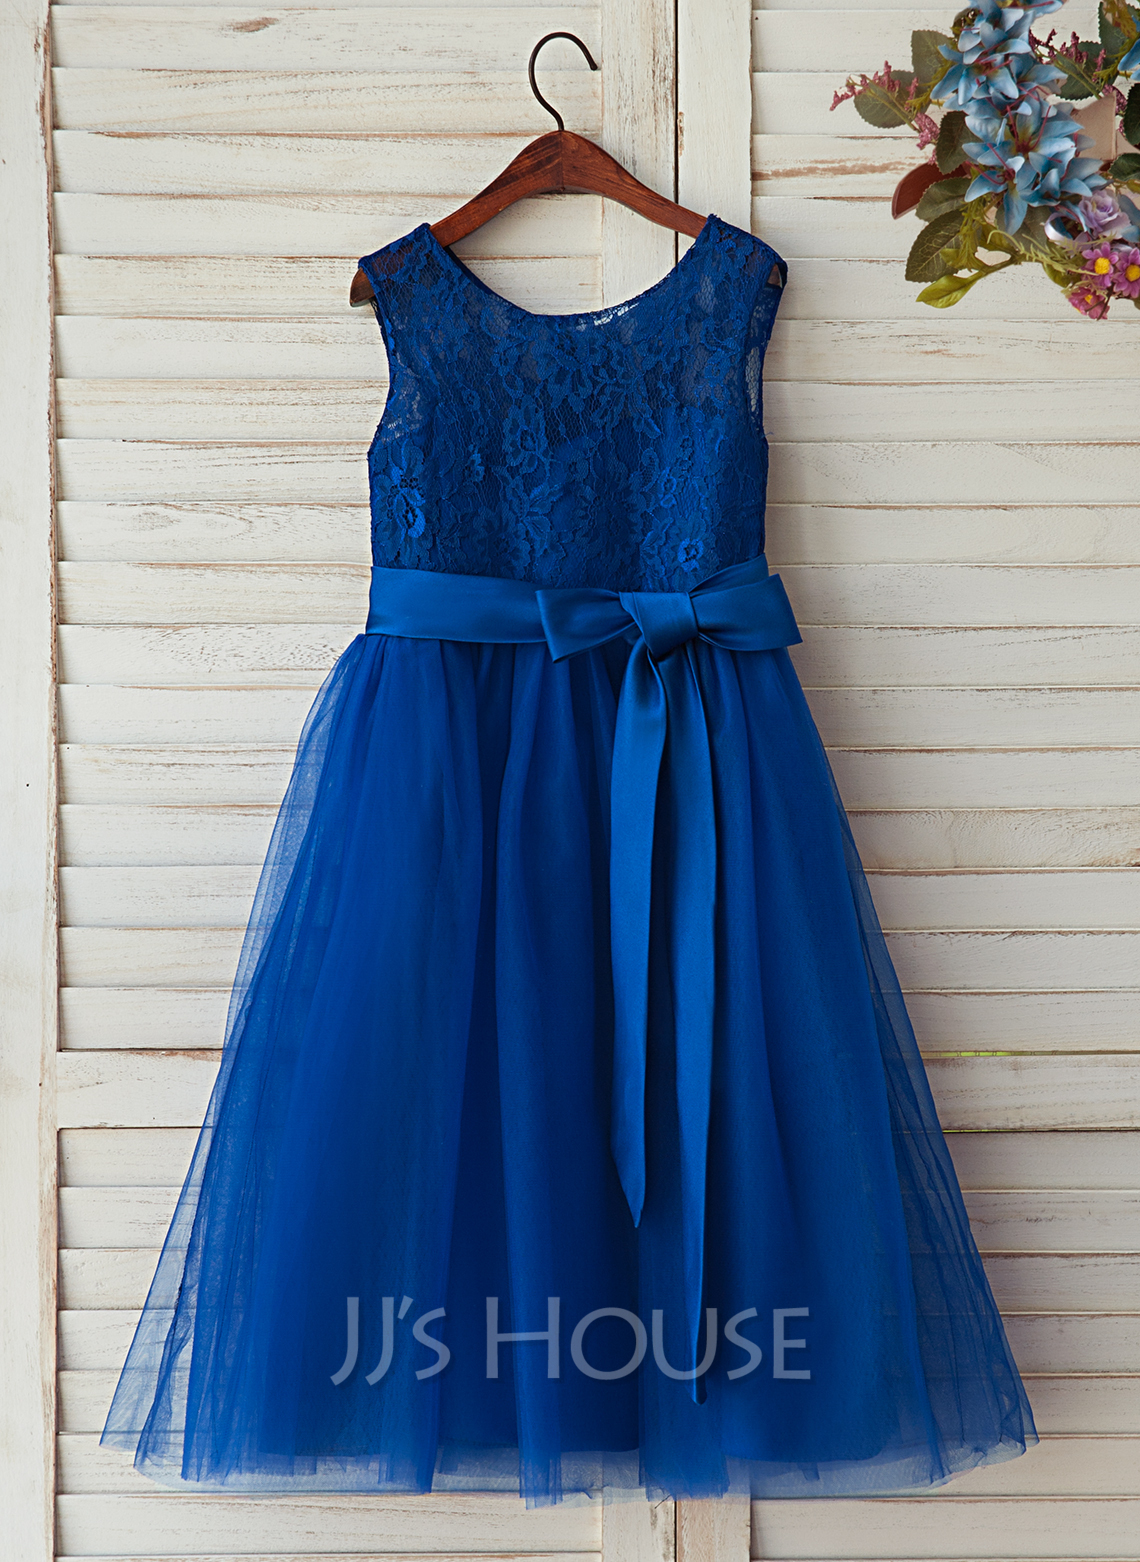 A-Line/Princess Tea-length Flower Girl Dress - Satin/Tulle/Lace Sleeveless Scoop Neck With Sash